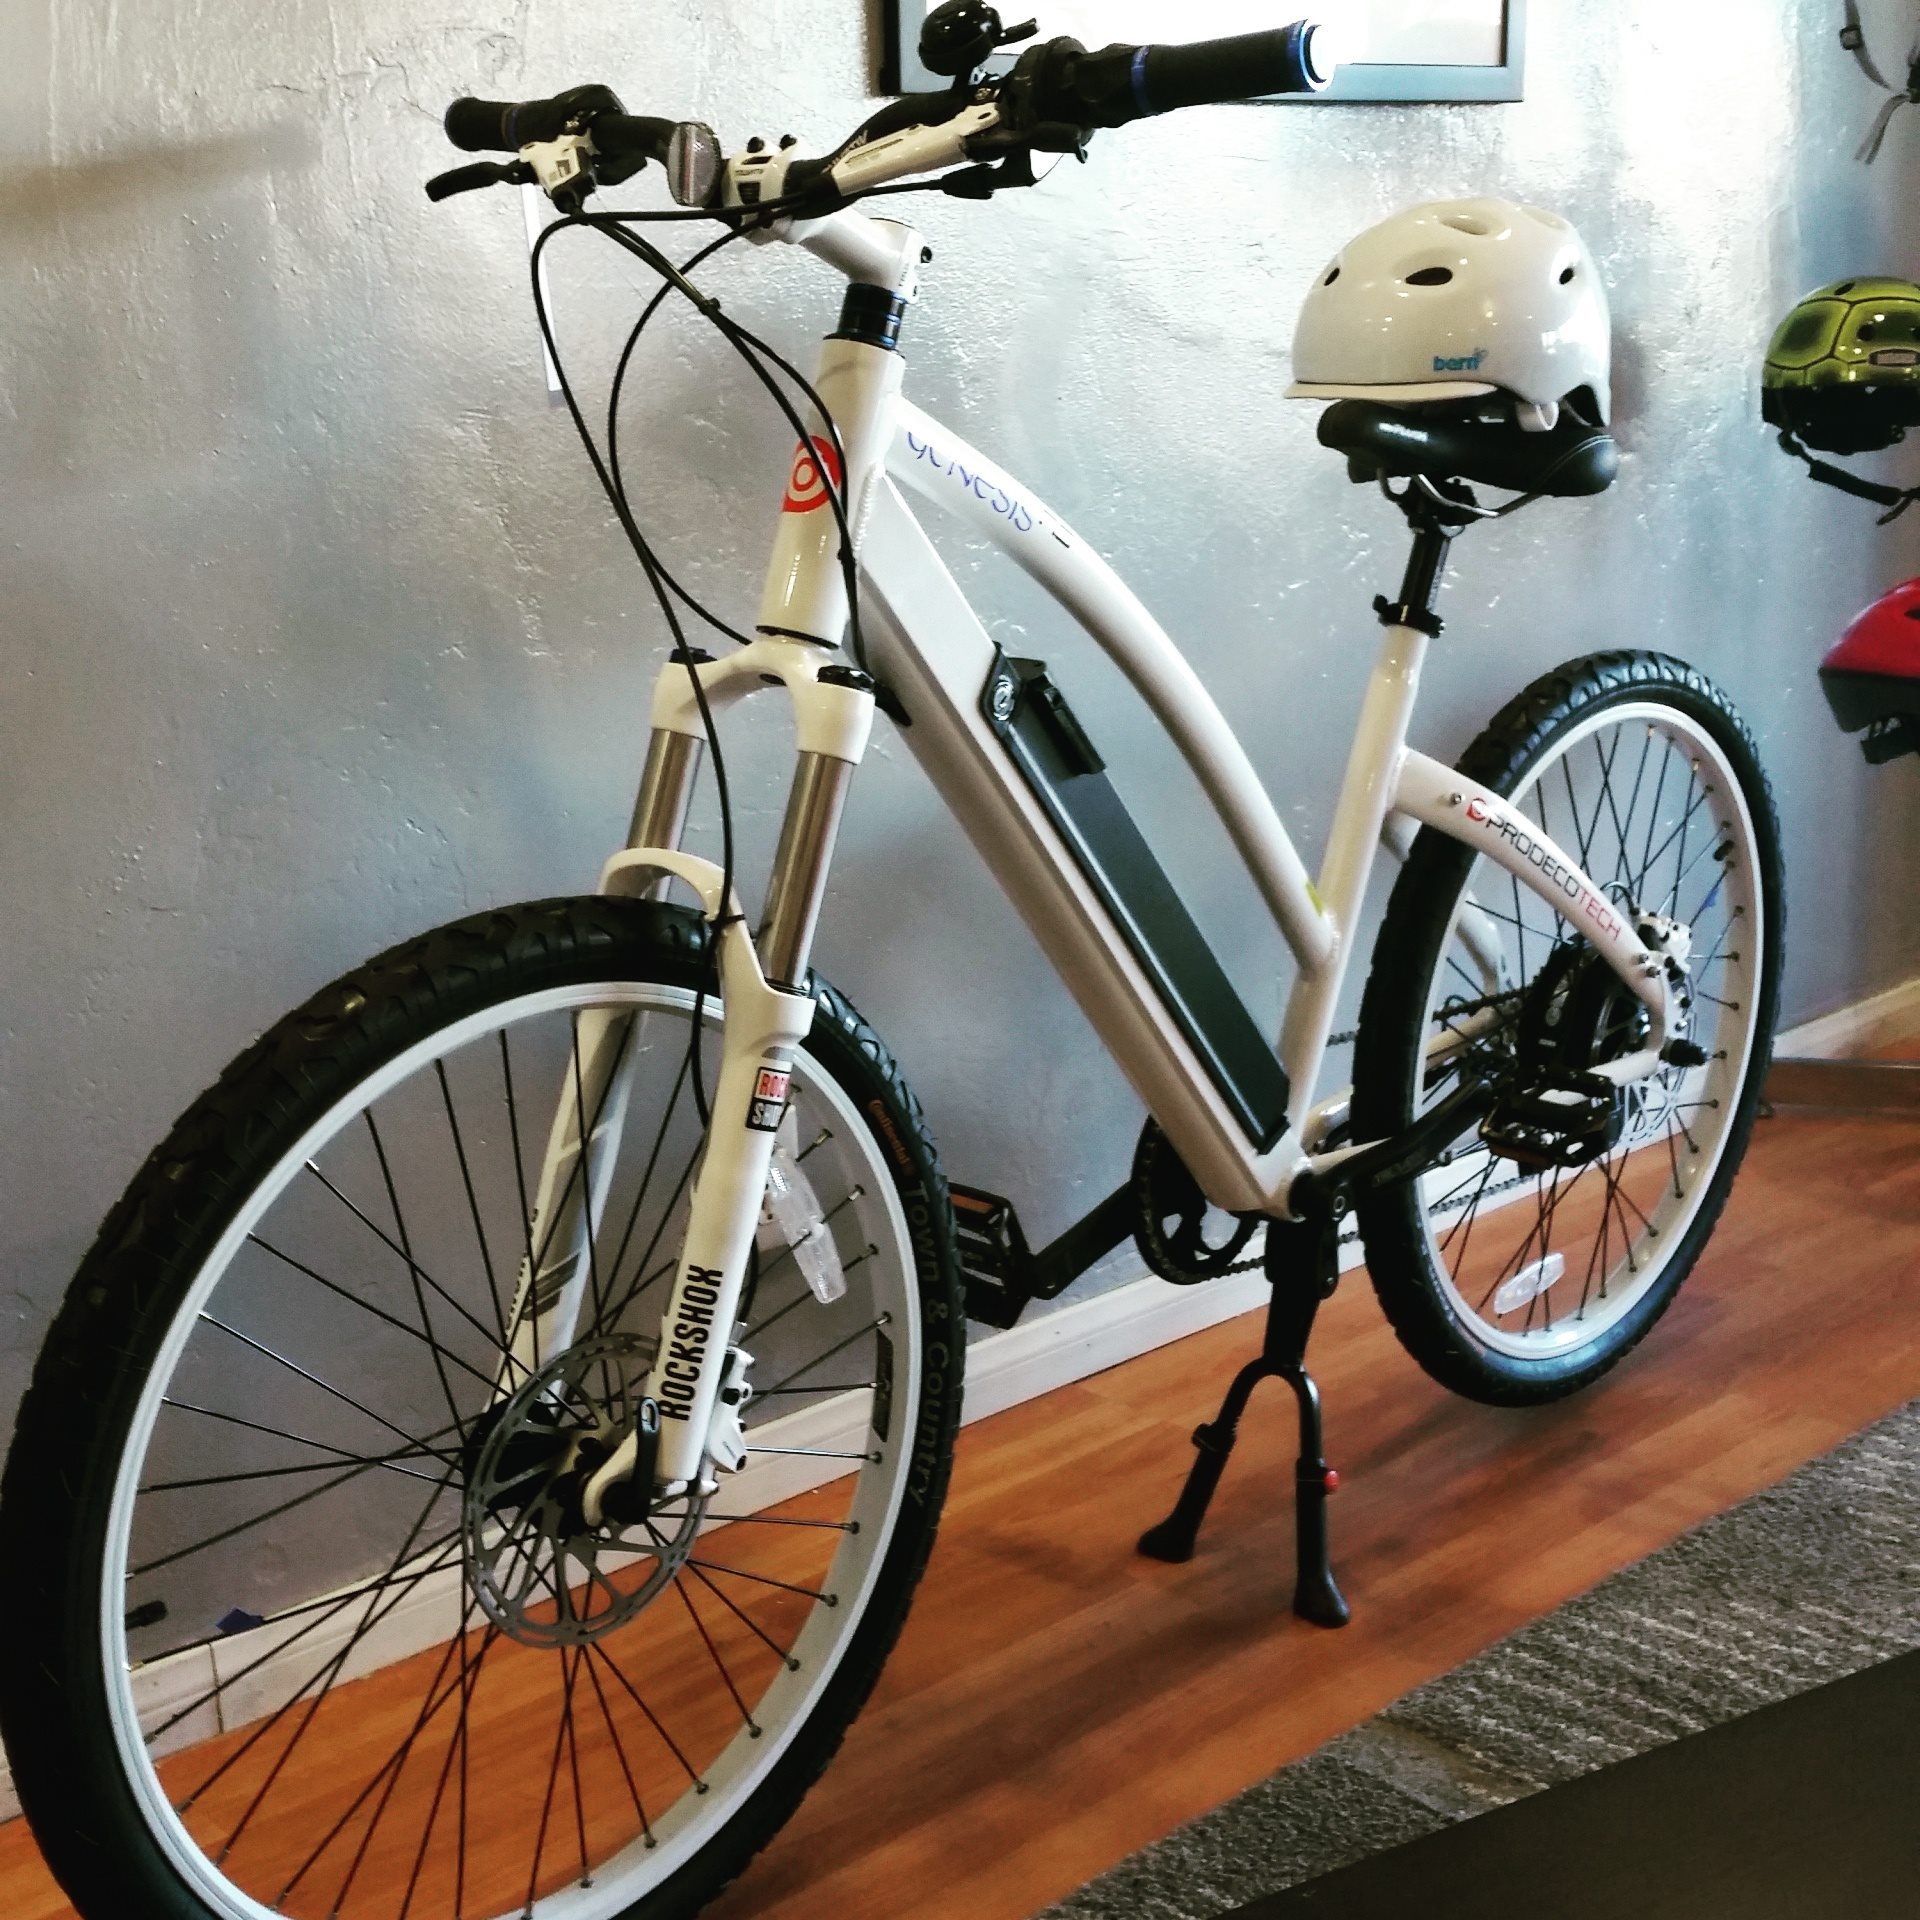 Dynamite Electric Bikes Is A Full Service Dealership To Multiple Brands Of Electric Bikes Allowing You To See All The Competitio Electric Bike Bike Dealership